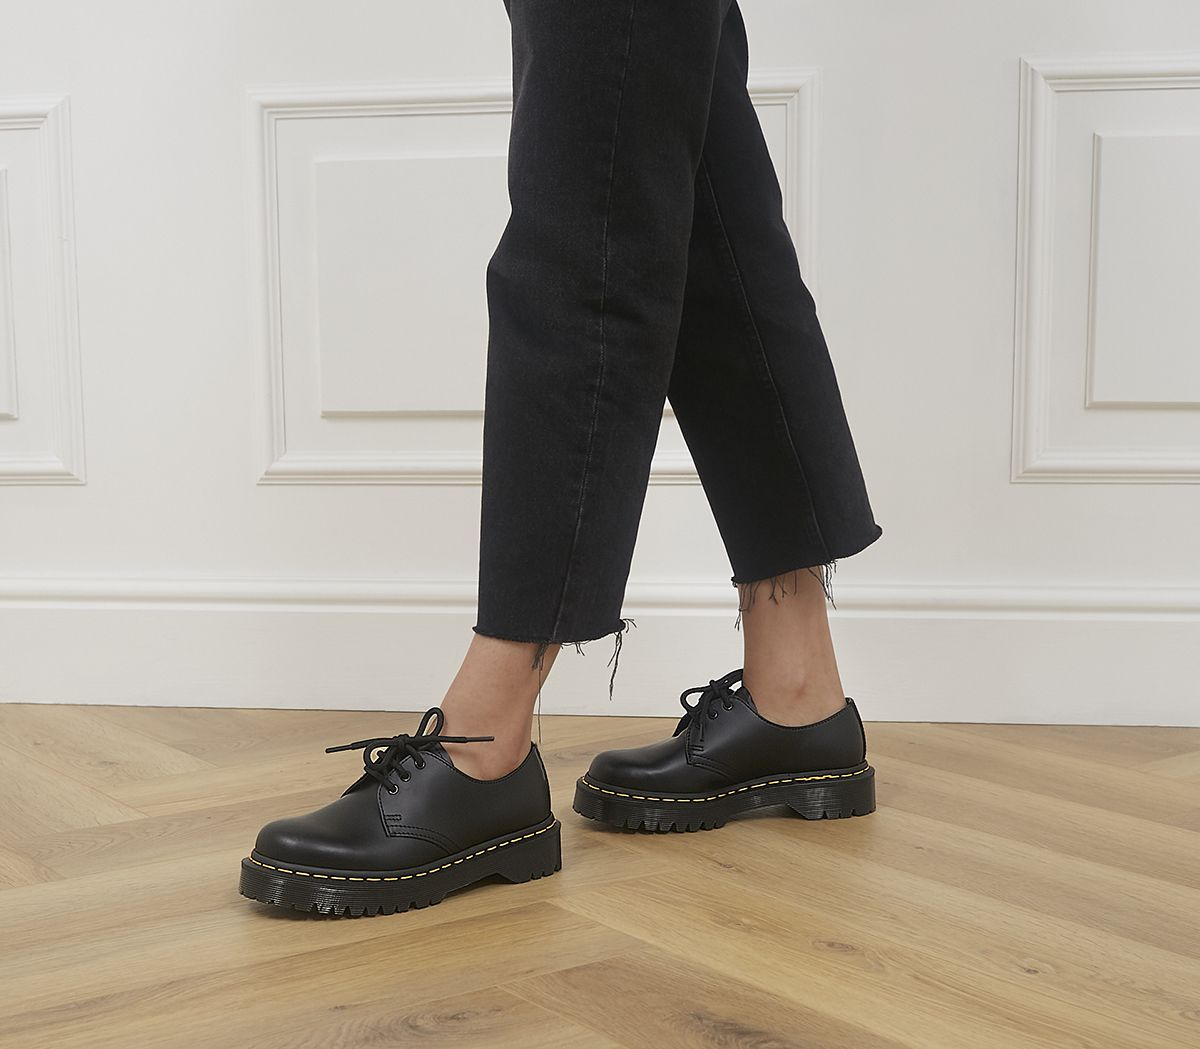 new concept 2568e 656a8 Dr. Martens Bex Shoes Black - Flats